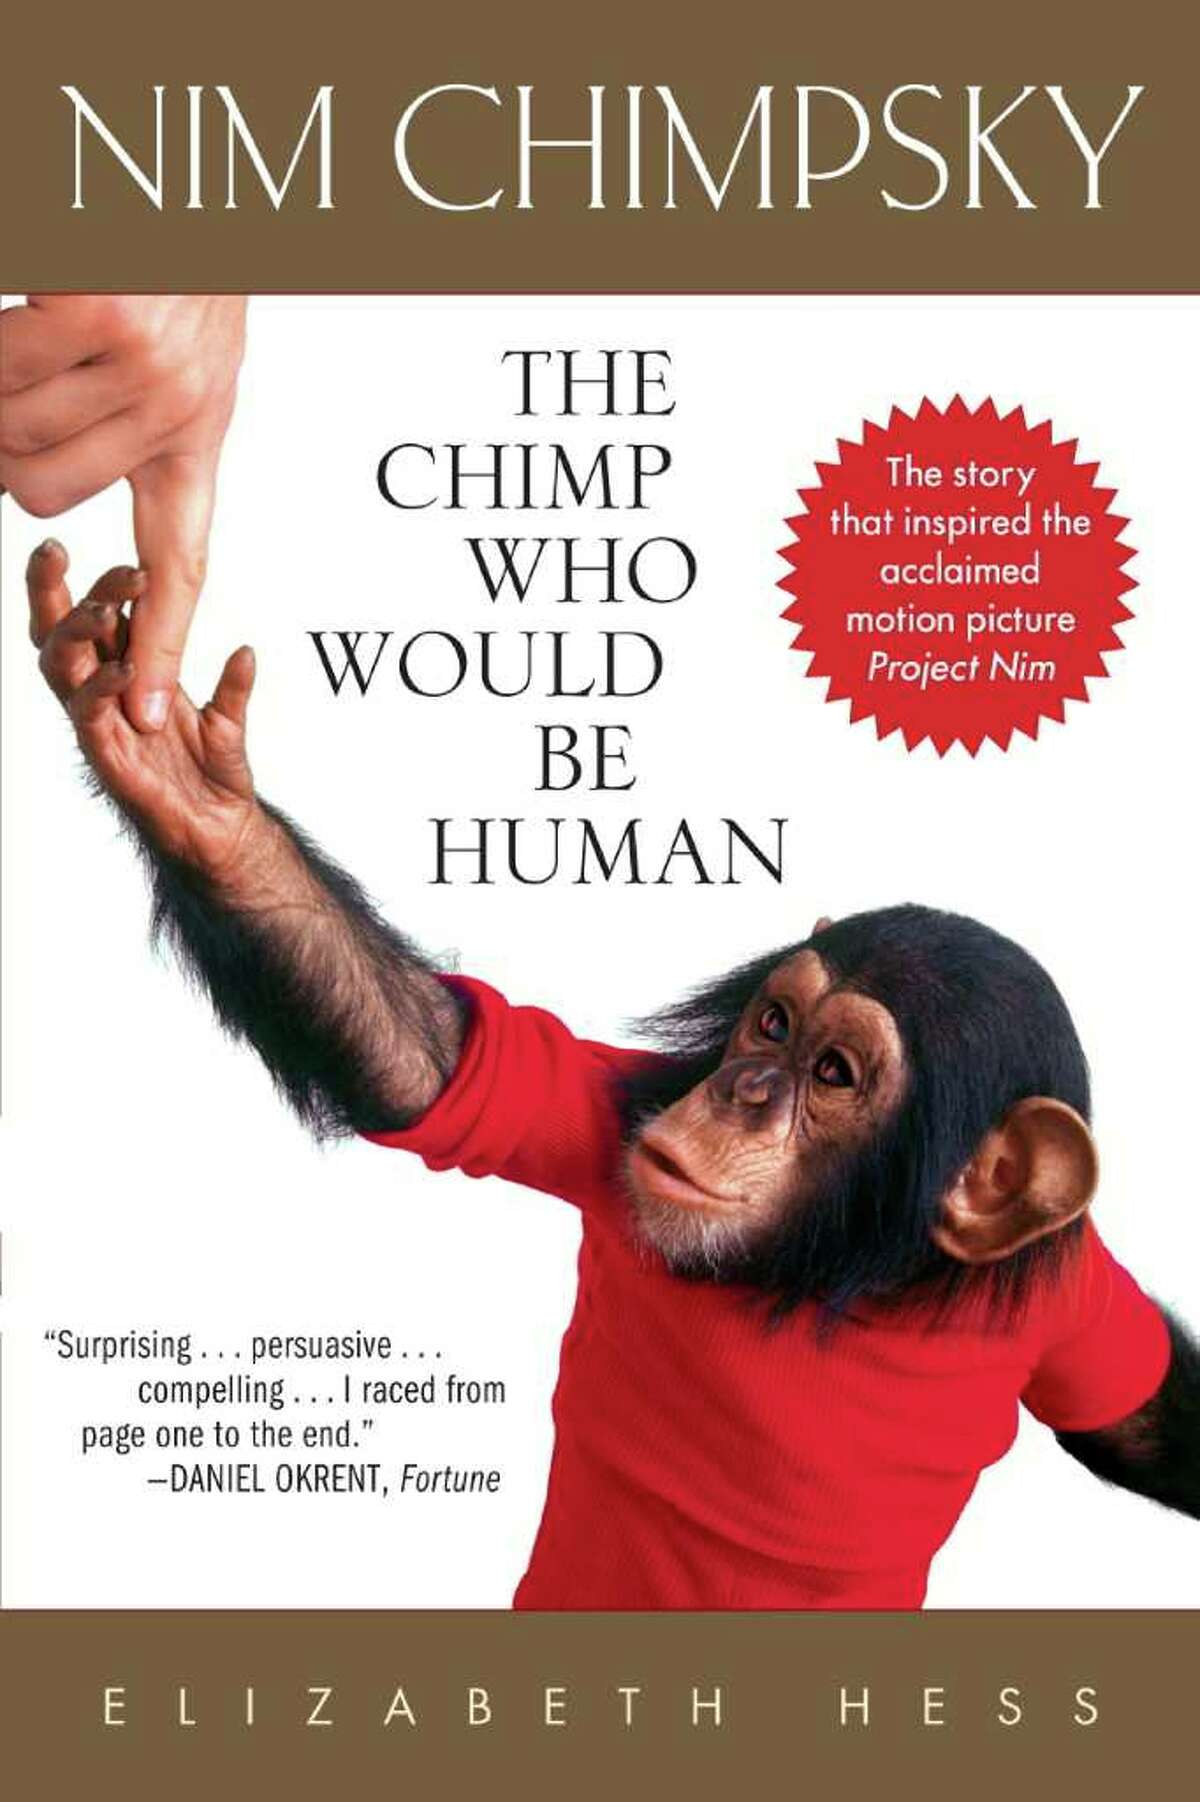 """The film """"Project Nim"""" is based on Elizabeth Hess's book """"Nim Chimpsky: The Chimp Who Would Be Human."""""""